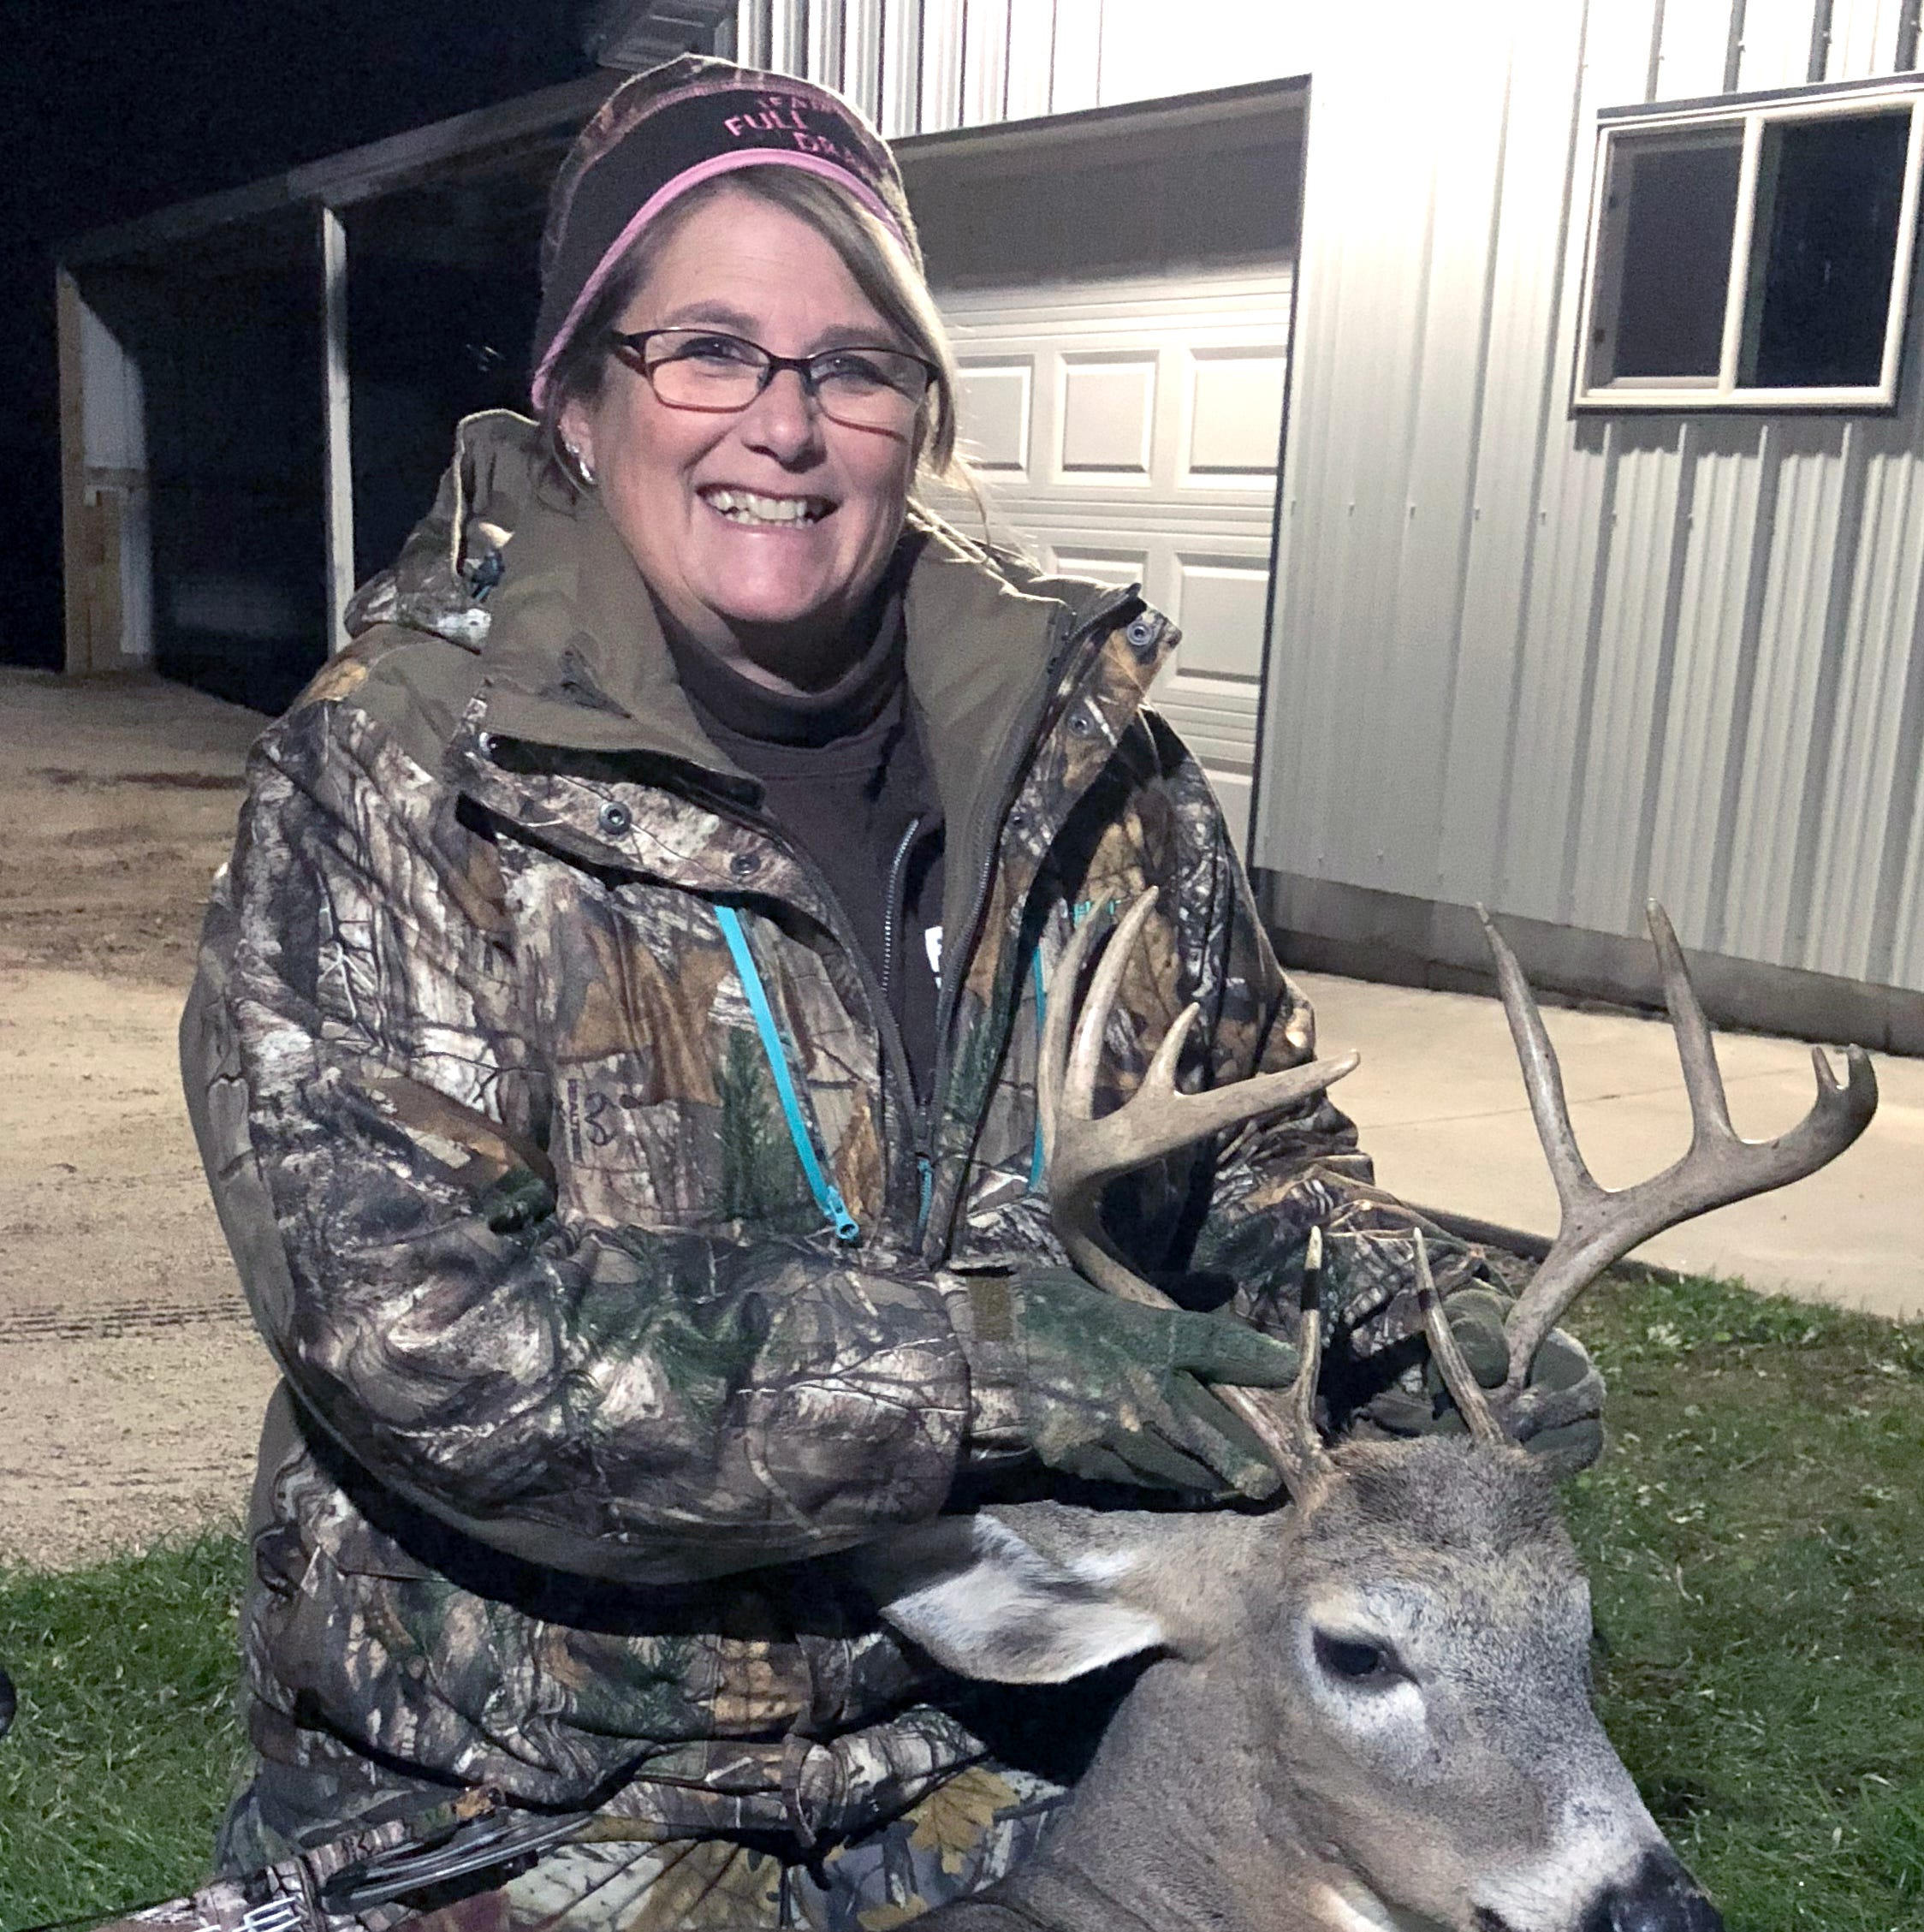 Manitowoc outdoors news: Woman lands 10-point buck, her first with a bow